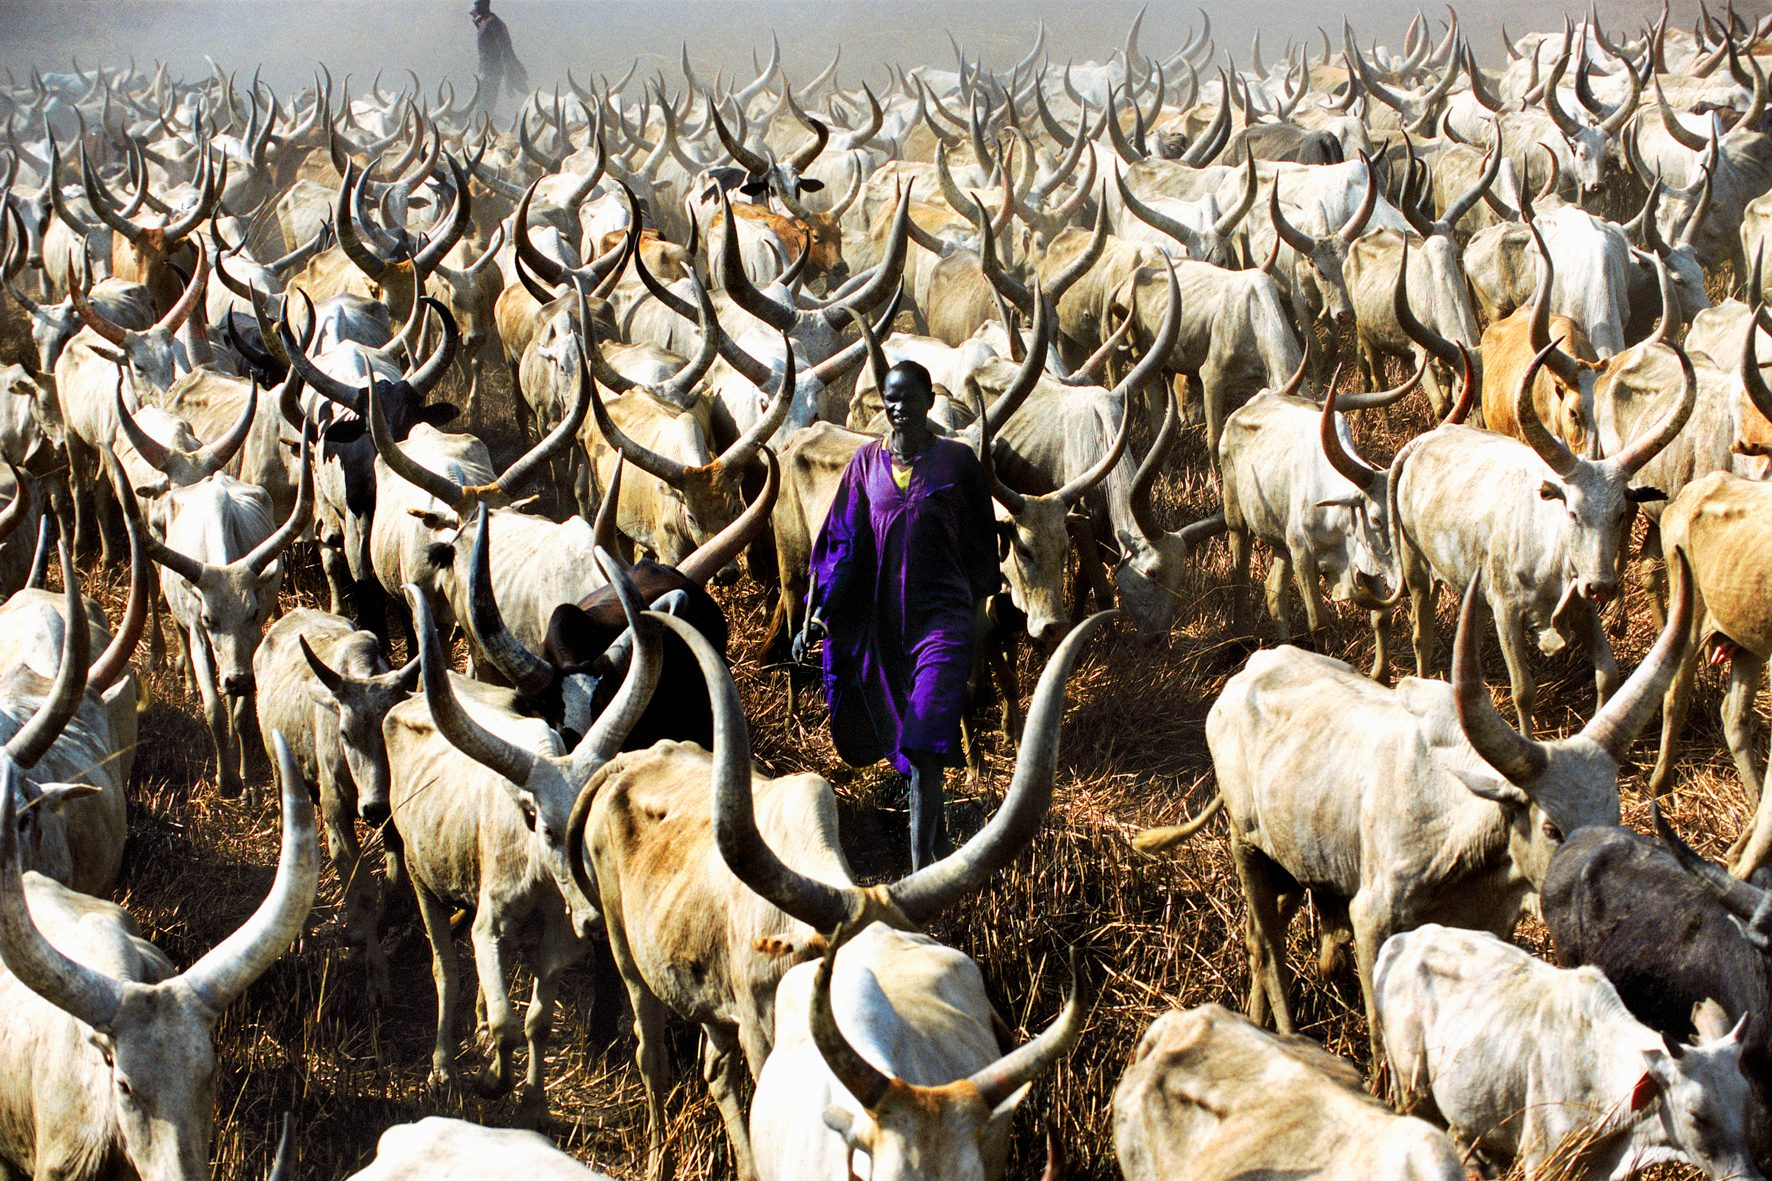 Dinka Herder with Purple Robe, South Sudan